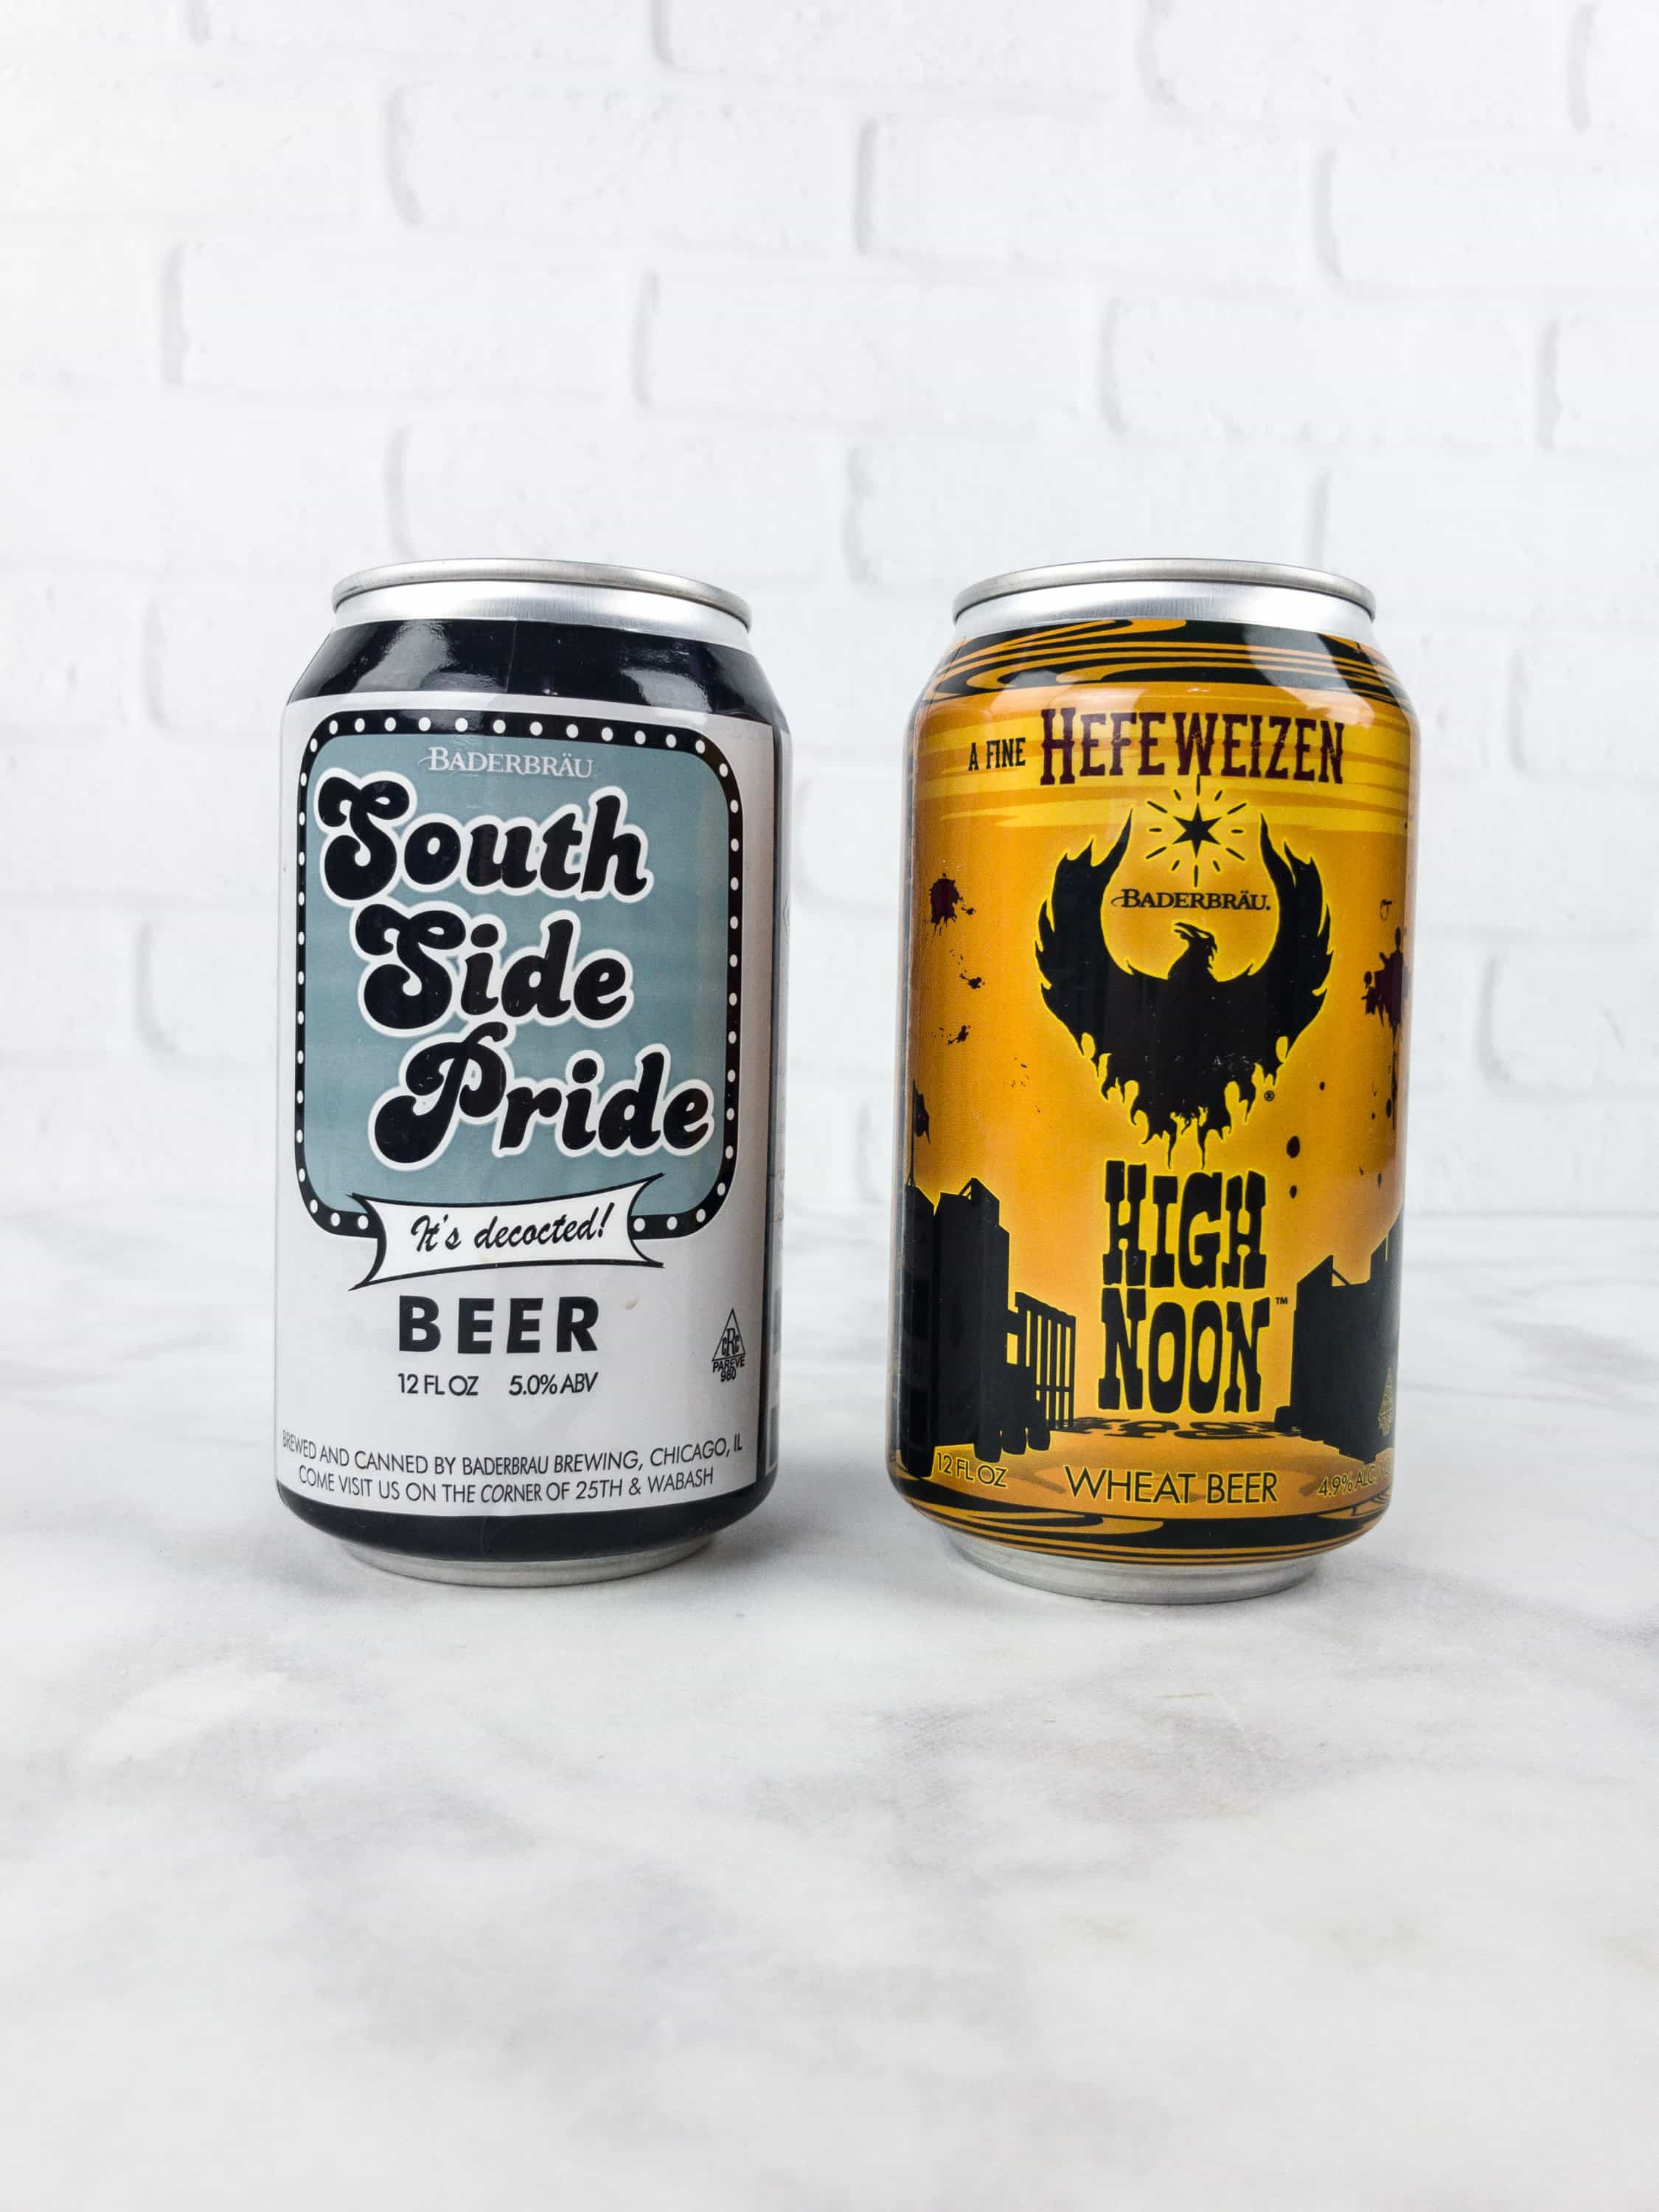 Craft beer club holiday coupon save up to 25 on gift for Craft beer of the month club coupon